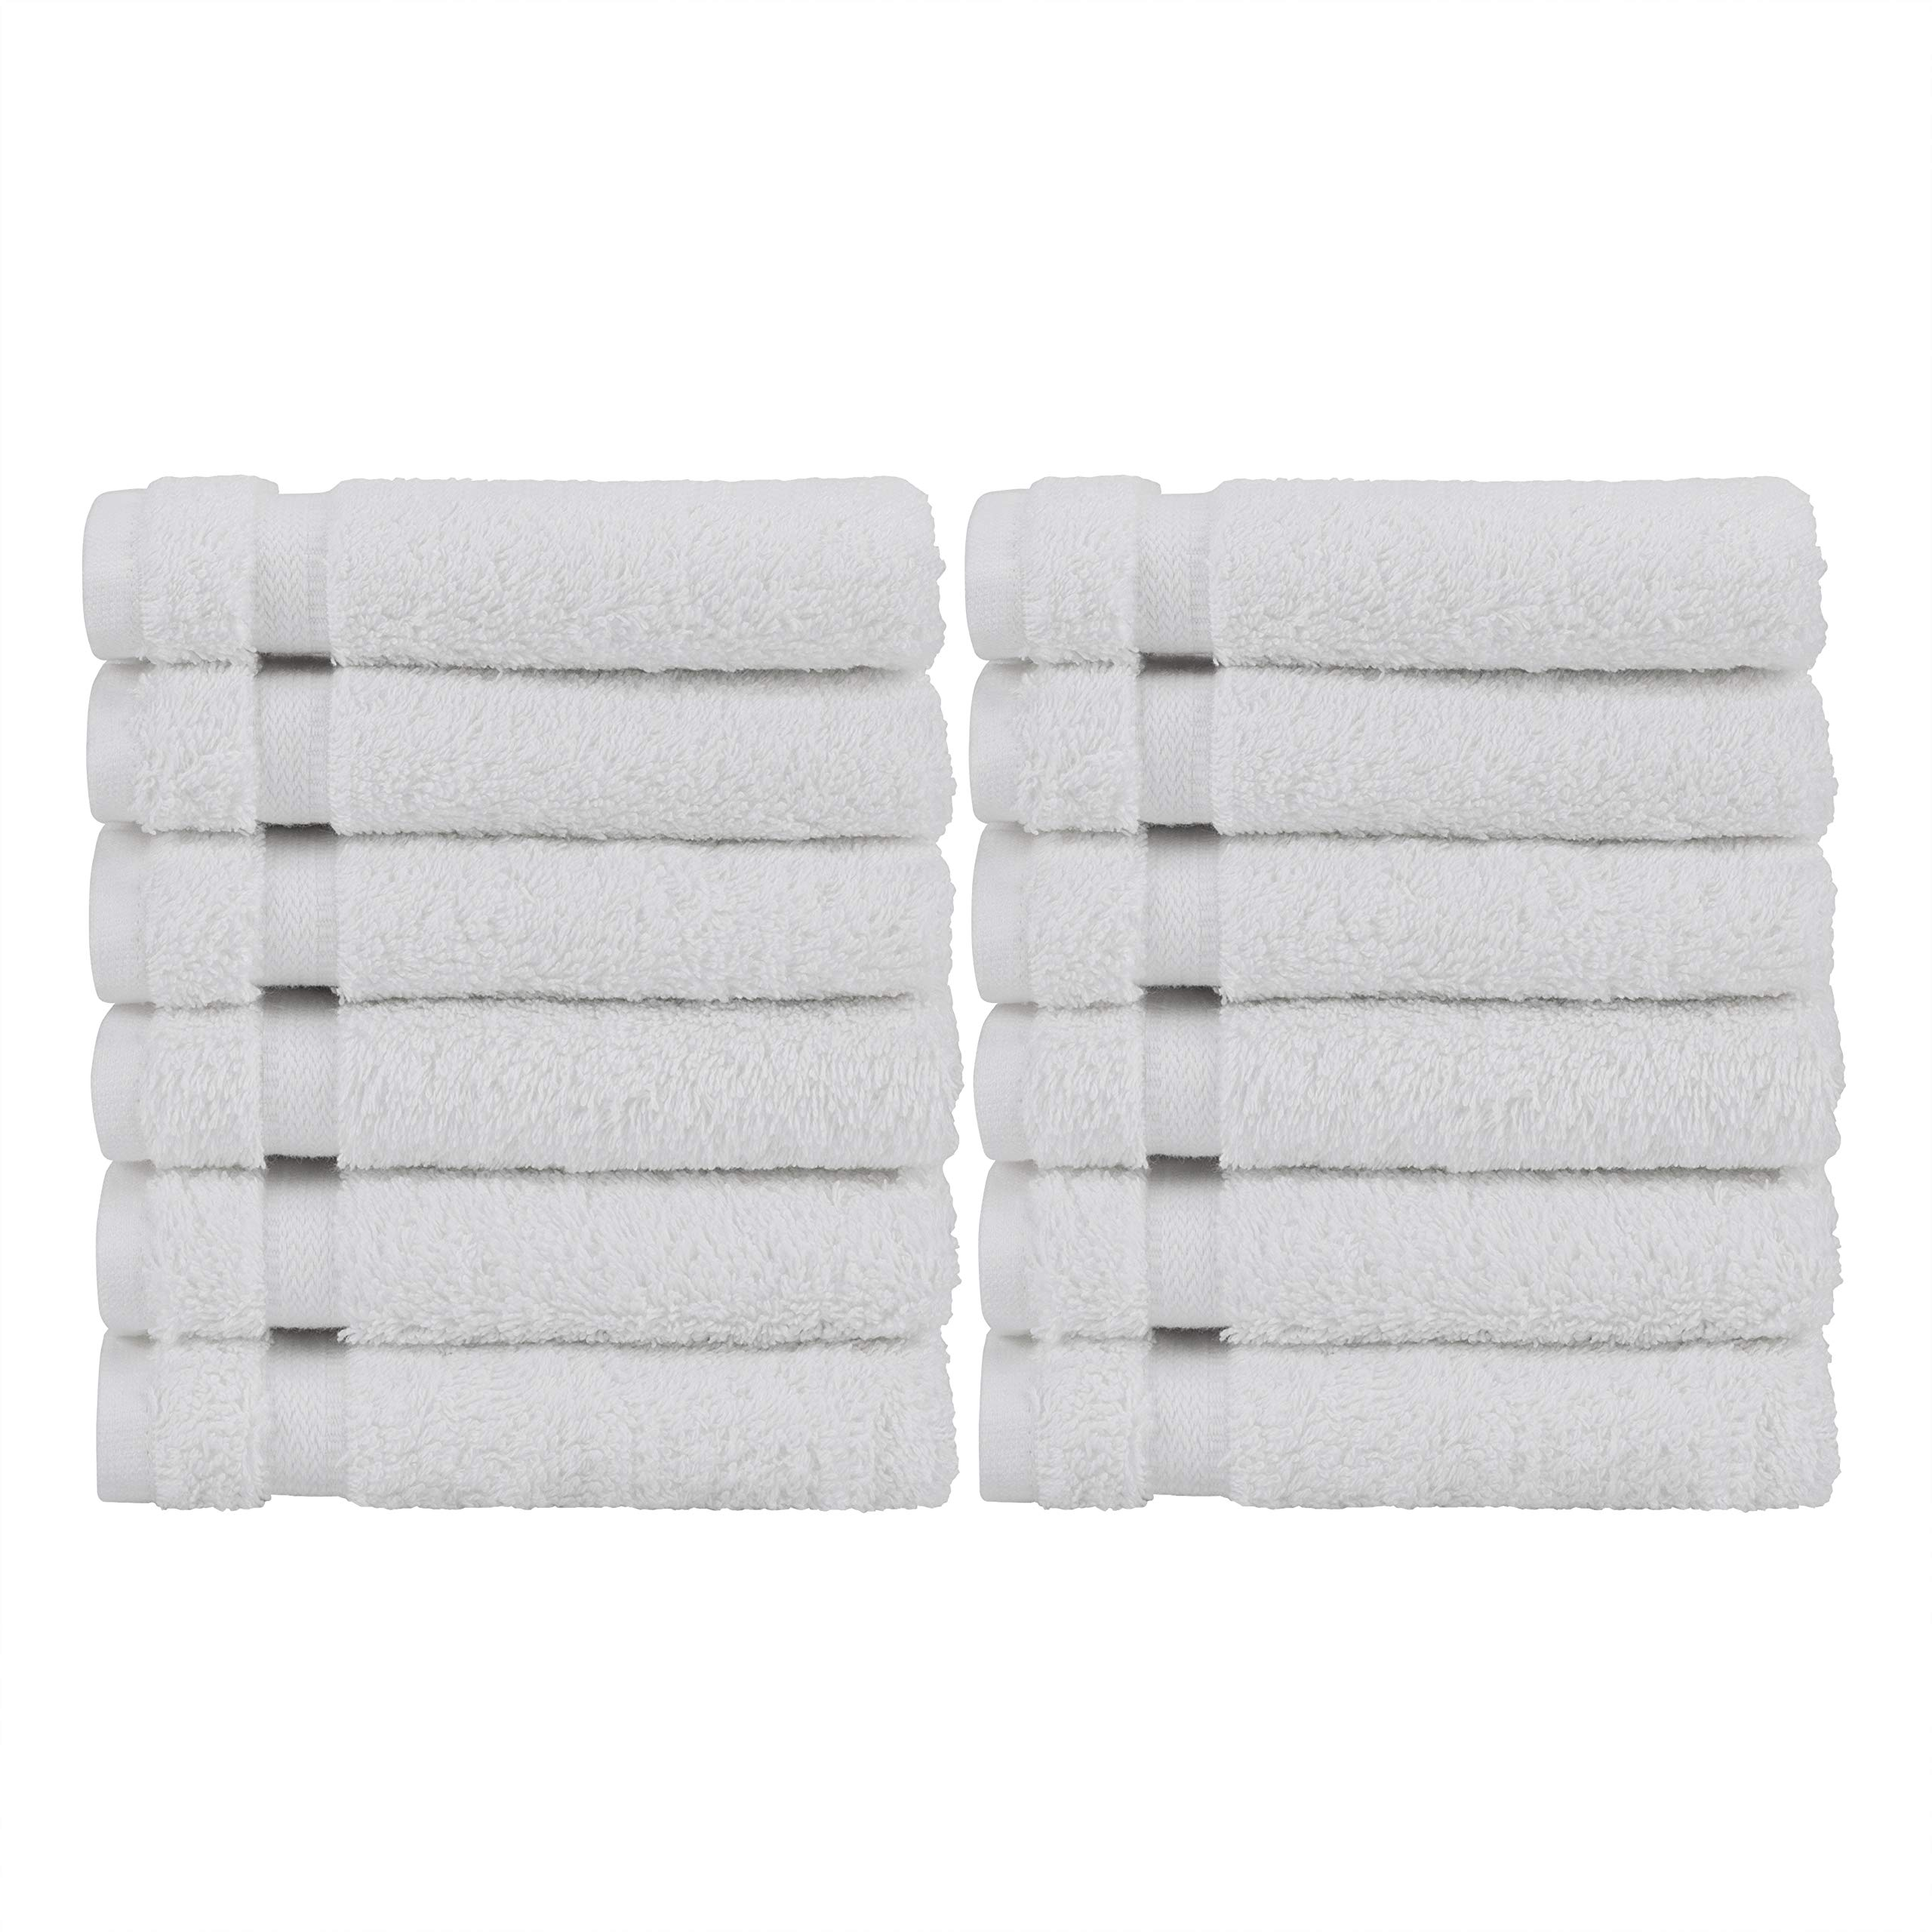 Baltic Linen Chelsea  100% Turkish Cotton Hotel Washcloths 13 x 13-inch White 12 Pack by Chelsea Collection by Baltic Linen